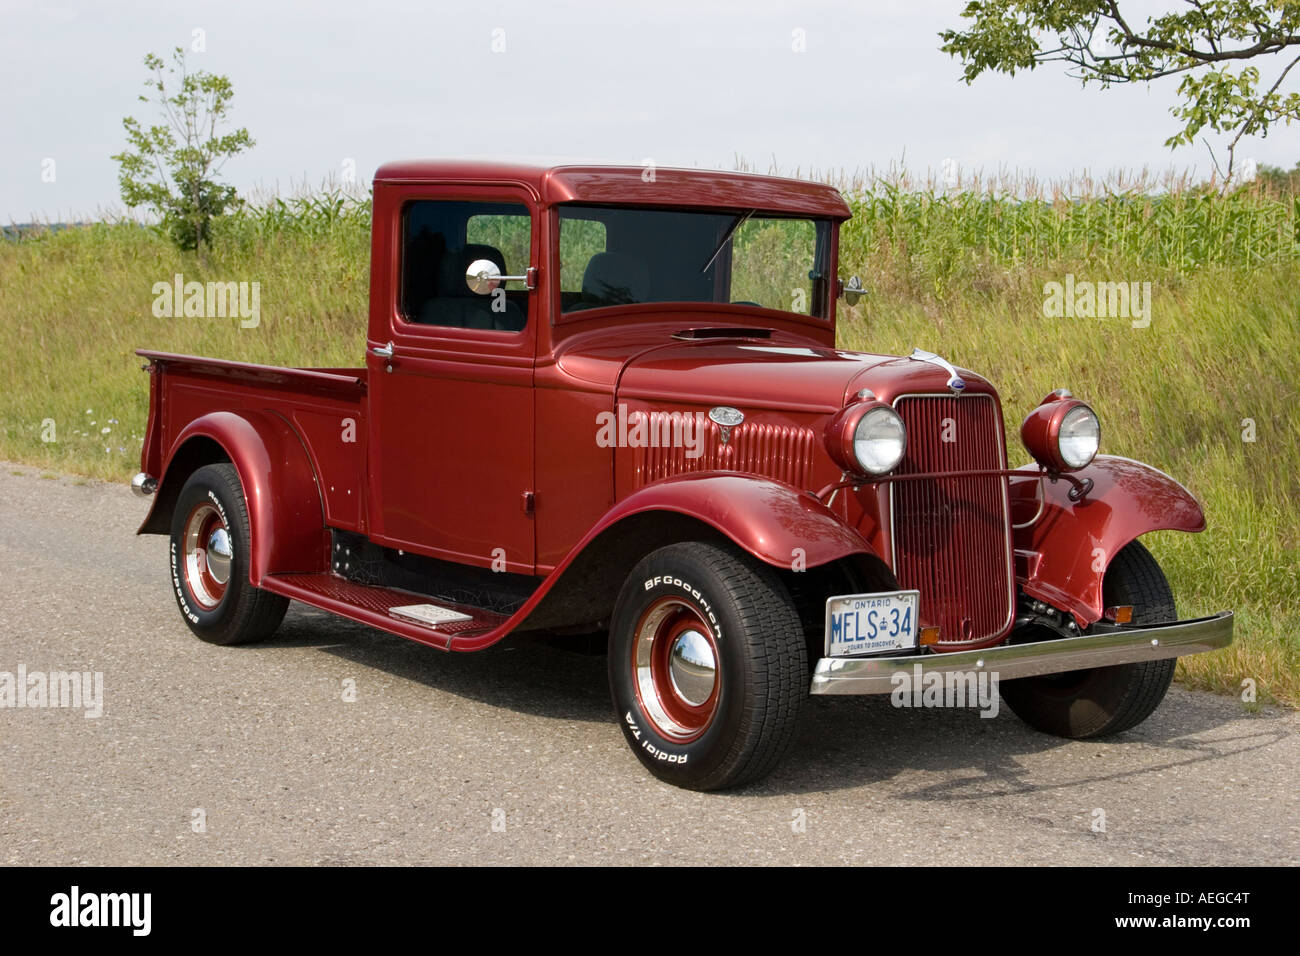 1934 ford pick up truck model b stock photo royalty free image 13677047 alamy. Black Bedroom Furniture Sets. Home Design Ideas